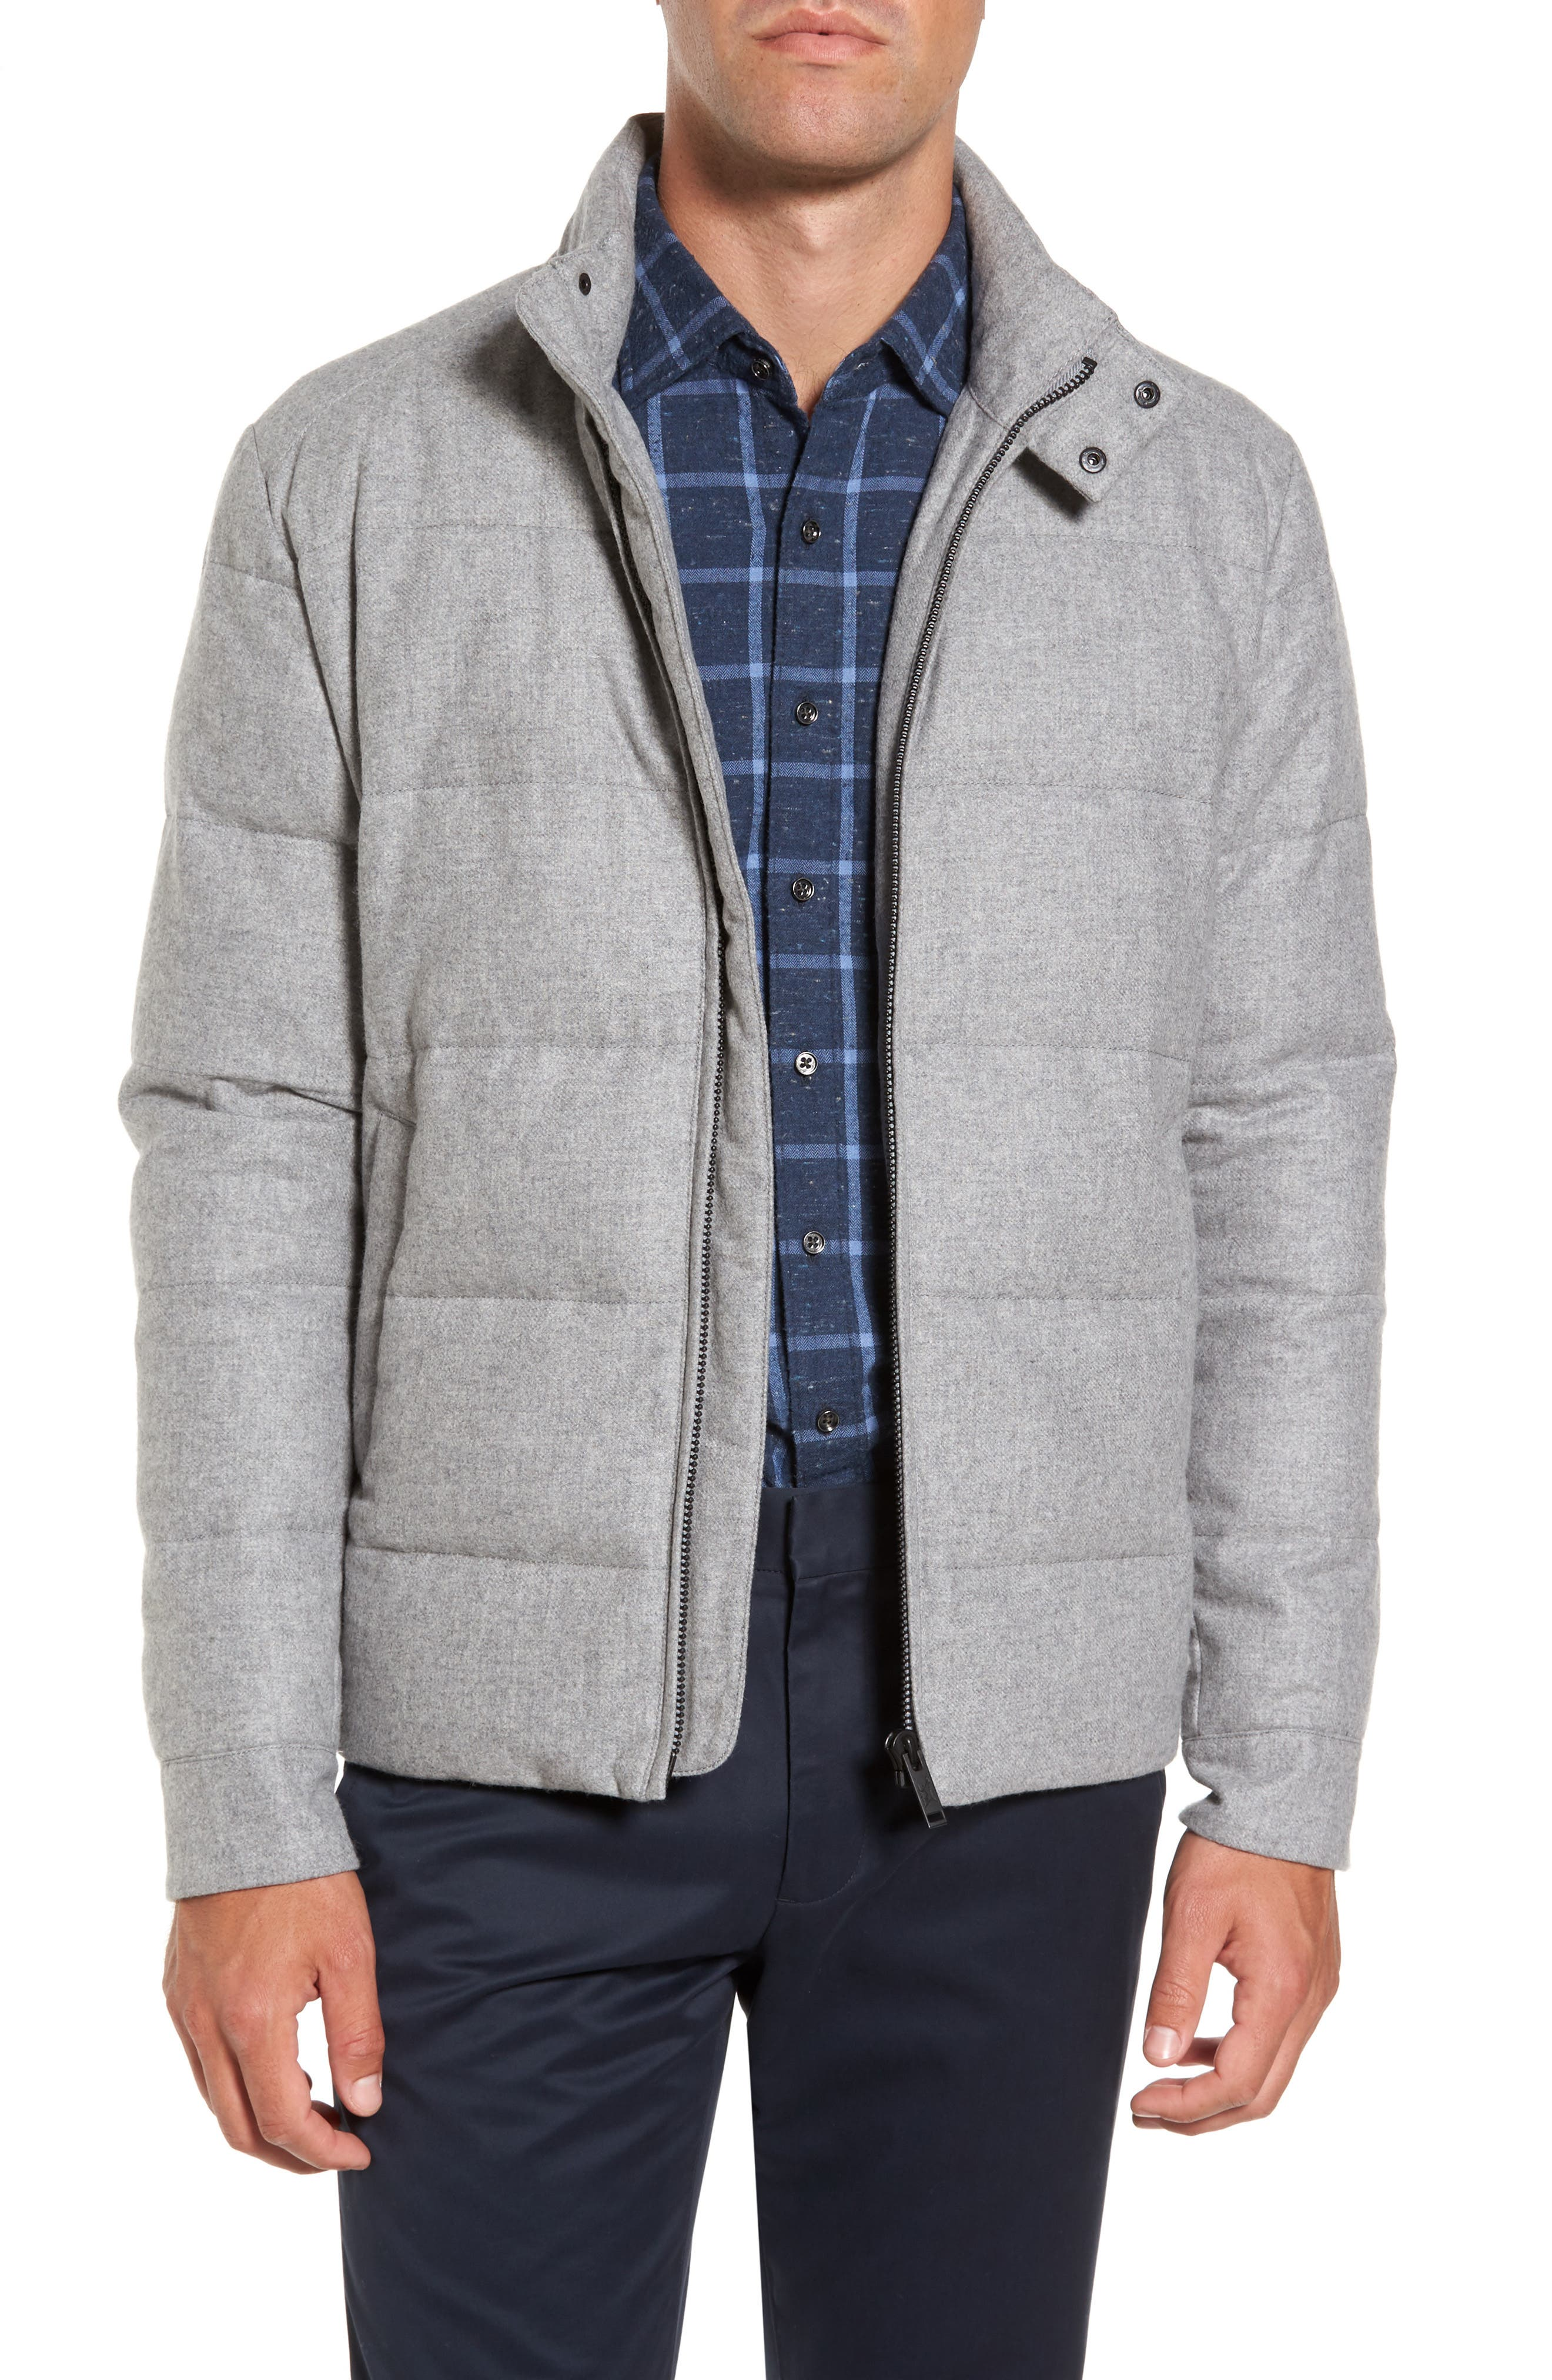 Boltons Water-Resistant Wool Down Jacket,                             Main thumbnail 1, color,                             Ash